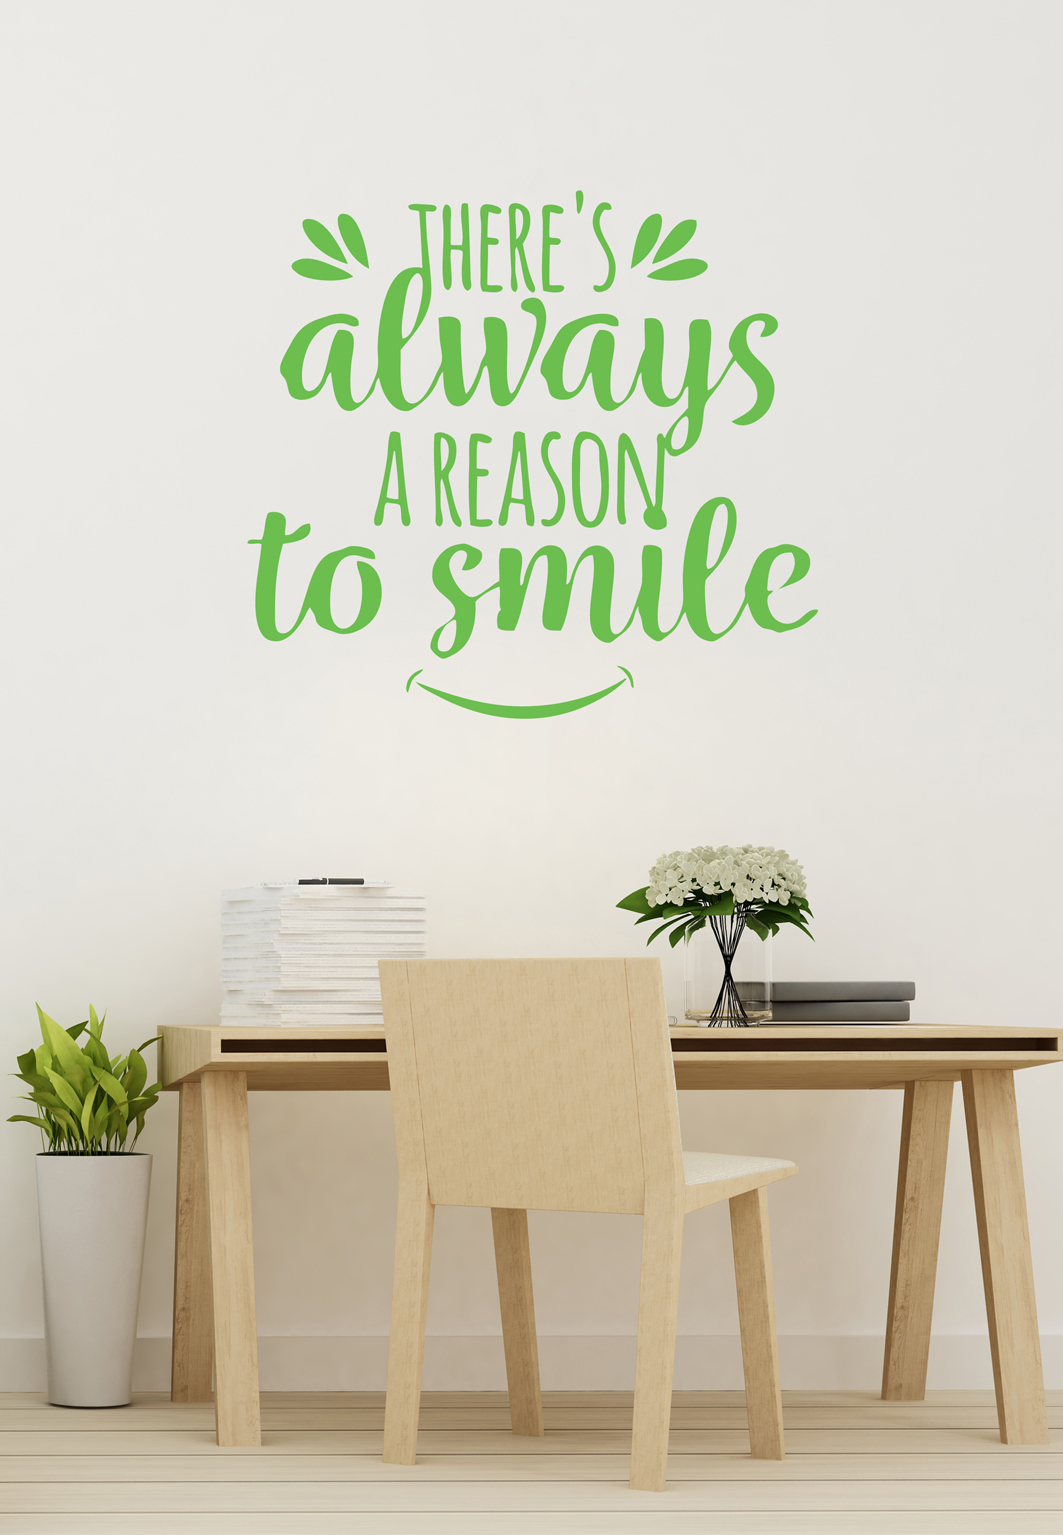 מדבקת קיר - Theres always a reason to smile